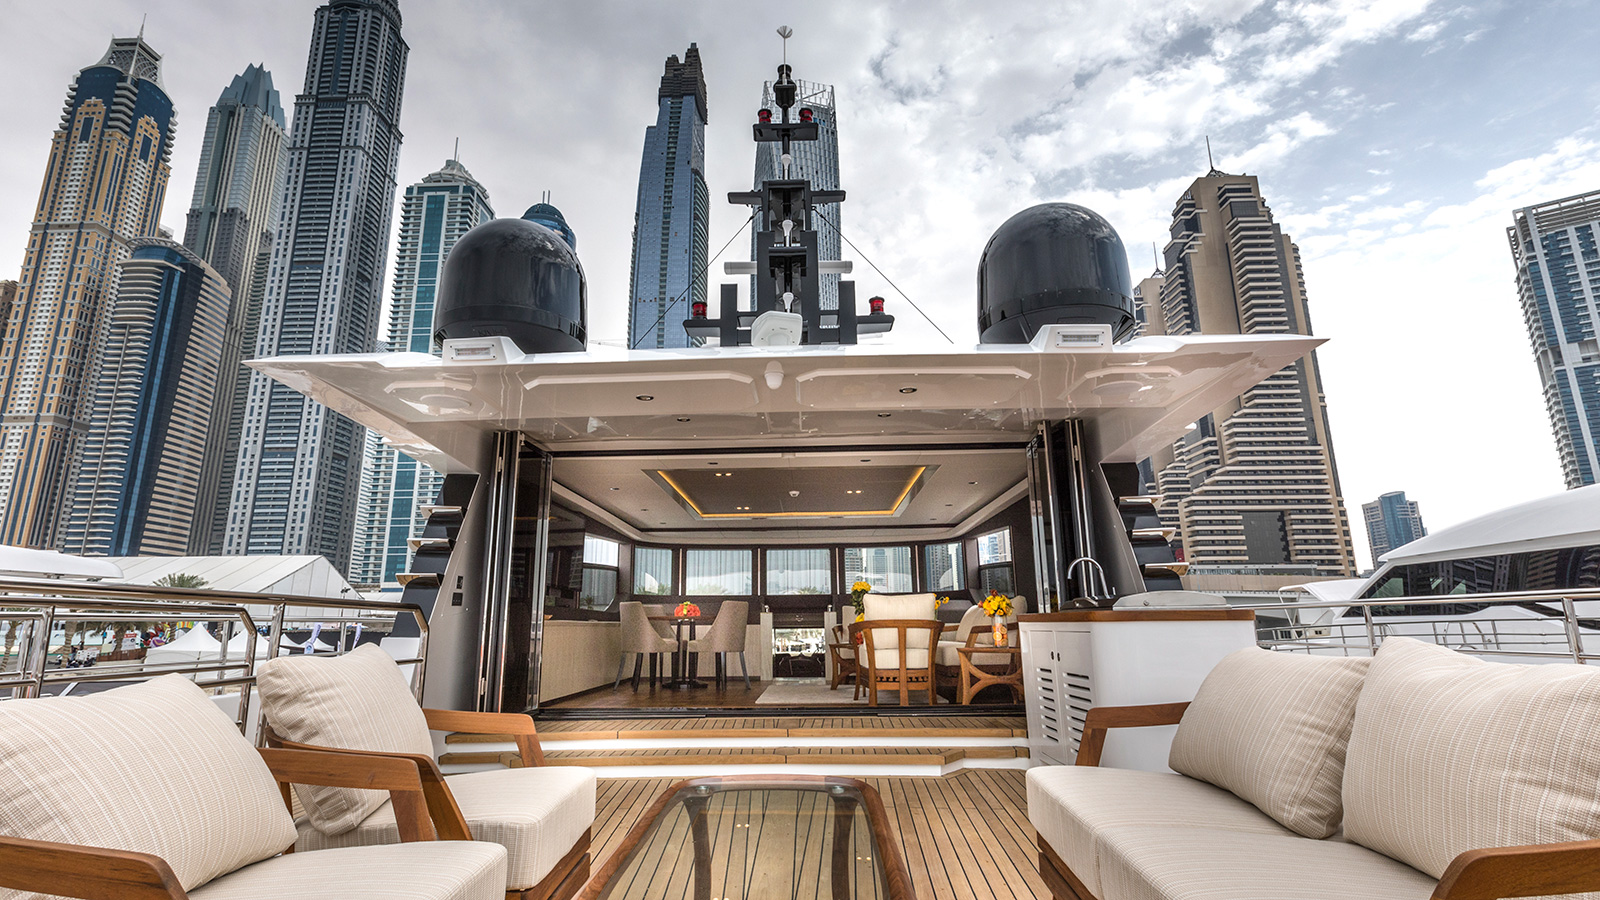 the-upper-deck-of-the-gulf-craft-majesty-100-yacht-nahar-credit-george-ajoury